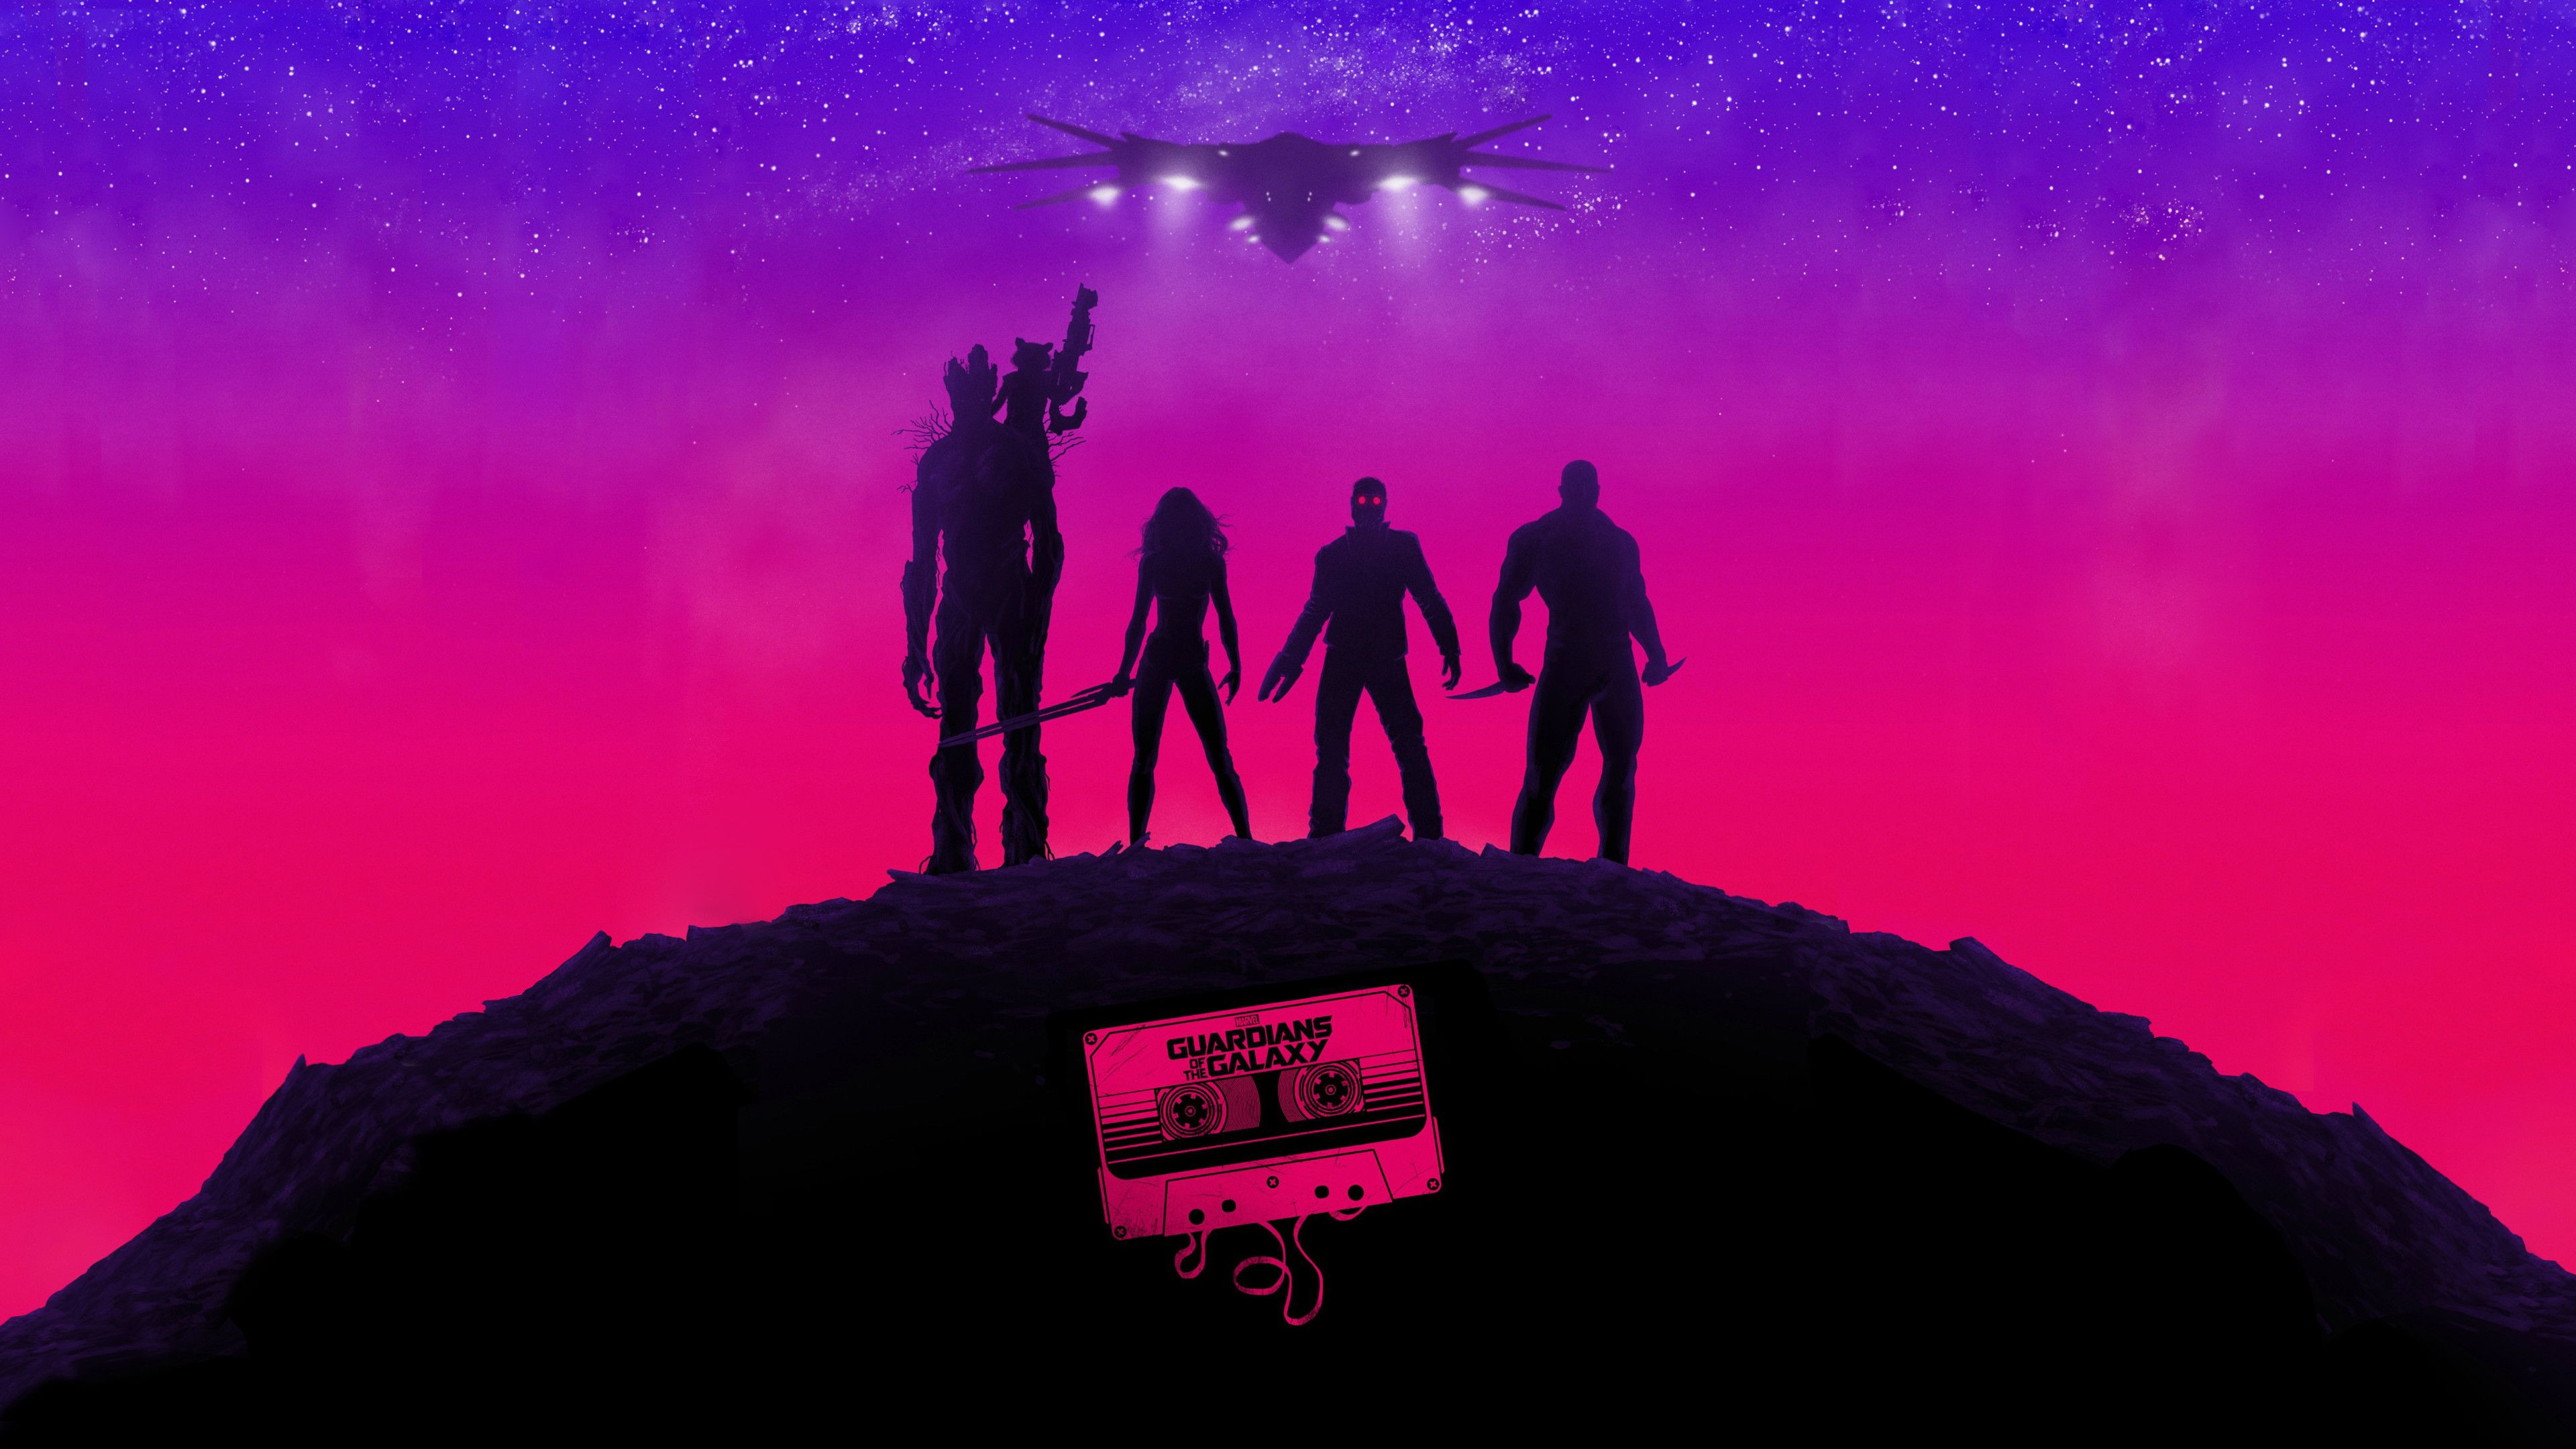 Guardians Of The Galaxy Wallpaper That I Modded From One Of The Posters 3840x2160 R Marvel Galaxy Poster Galaxy Art Guardians Of The Galaxy